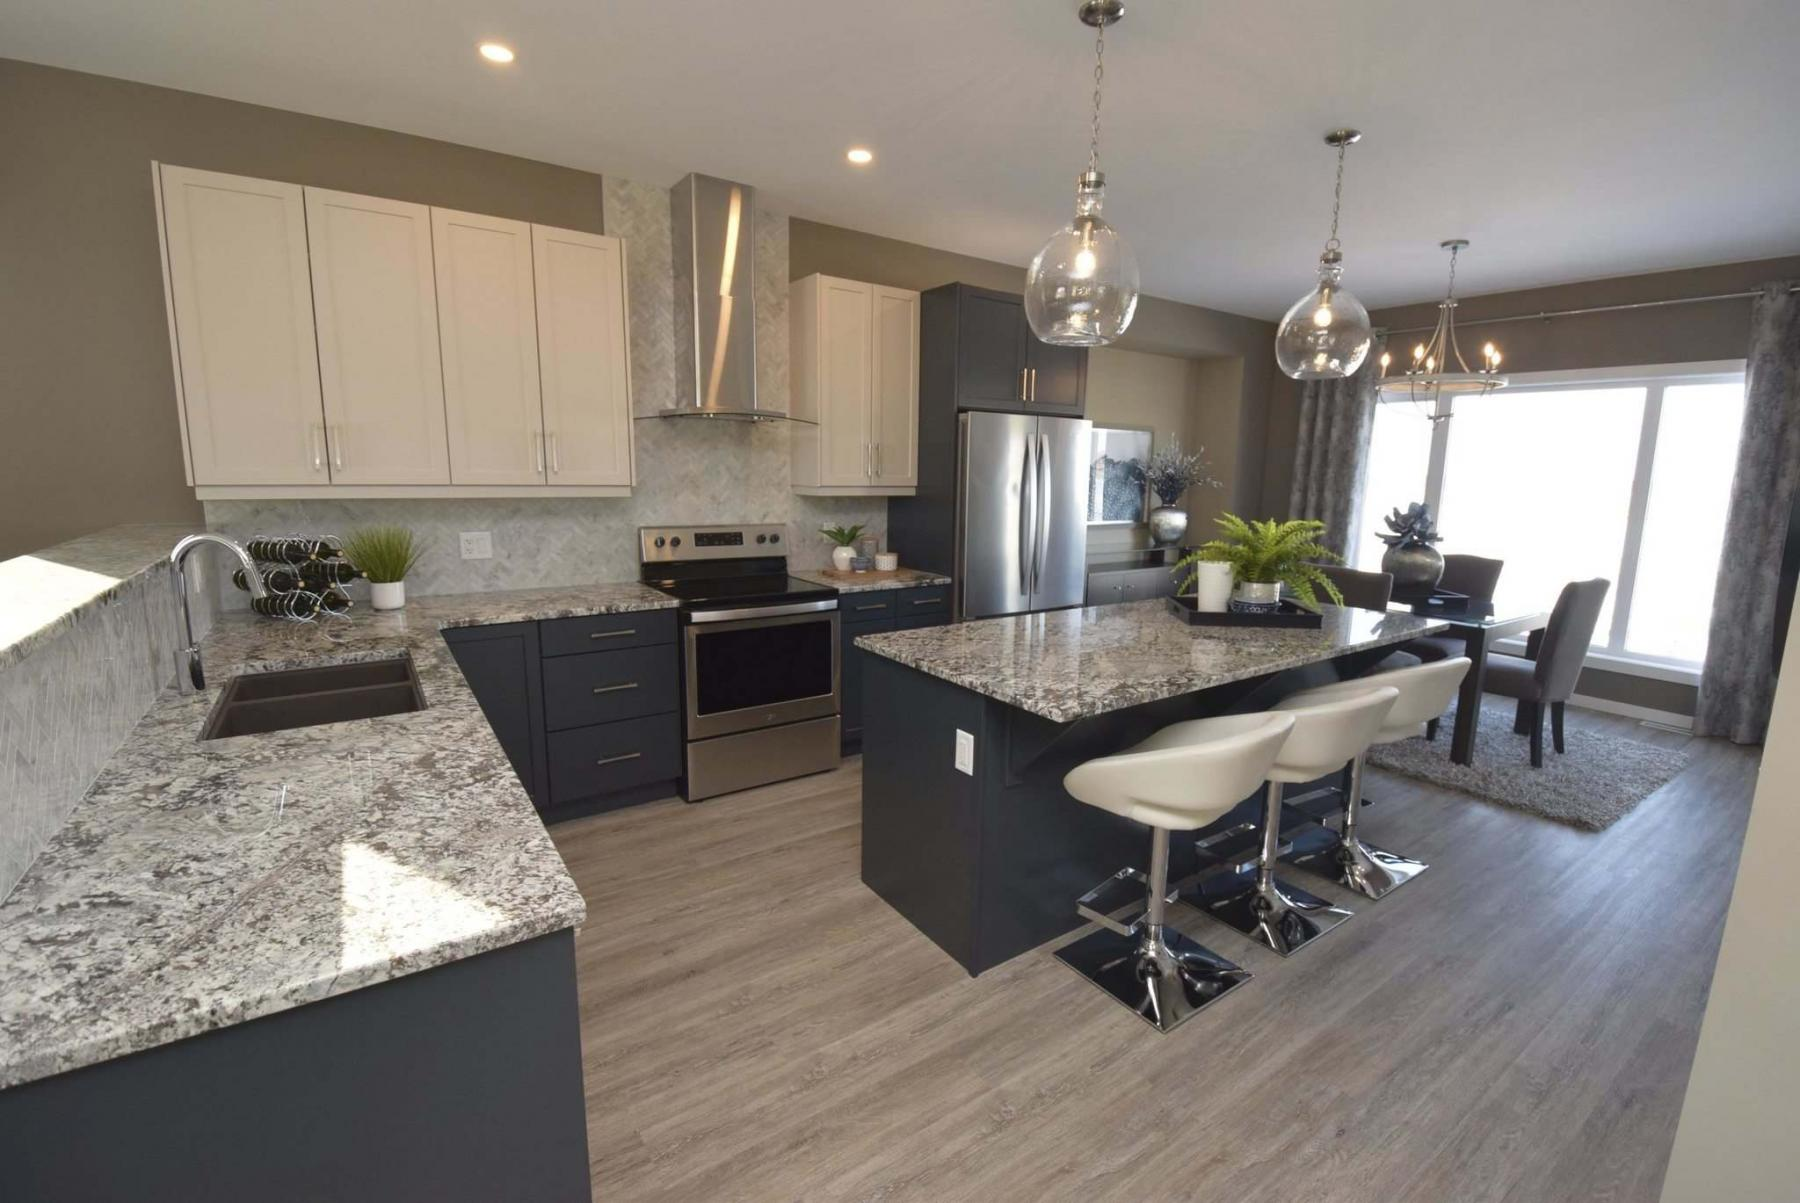 <p>TODD LEWYS / WINNIPEG FREE PRESS</p><p>Plenty of granite gives the kitchen a touch of luxury.</p>